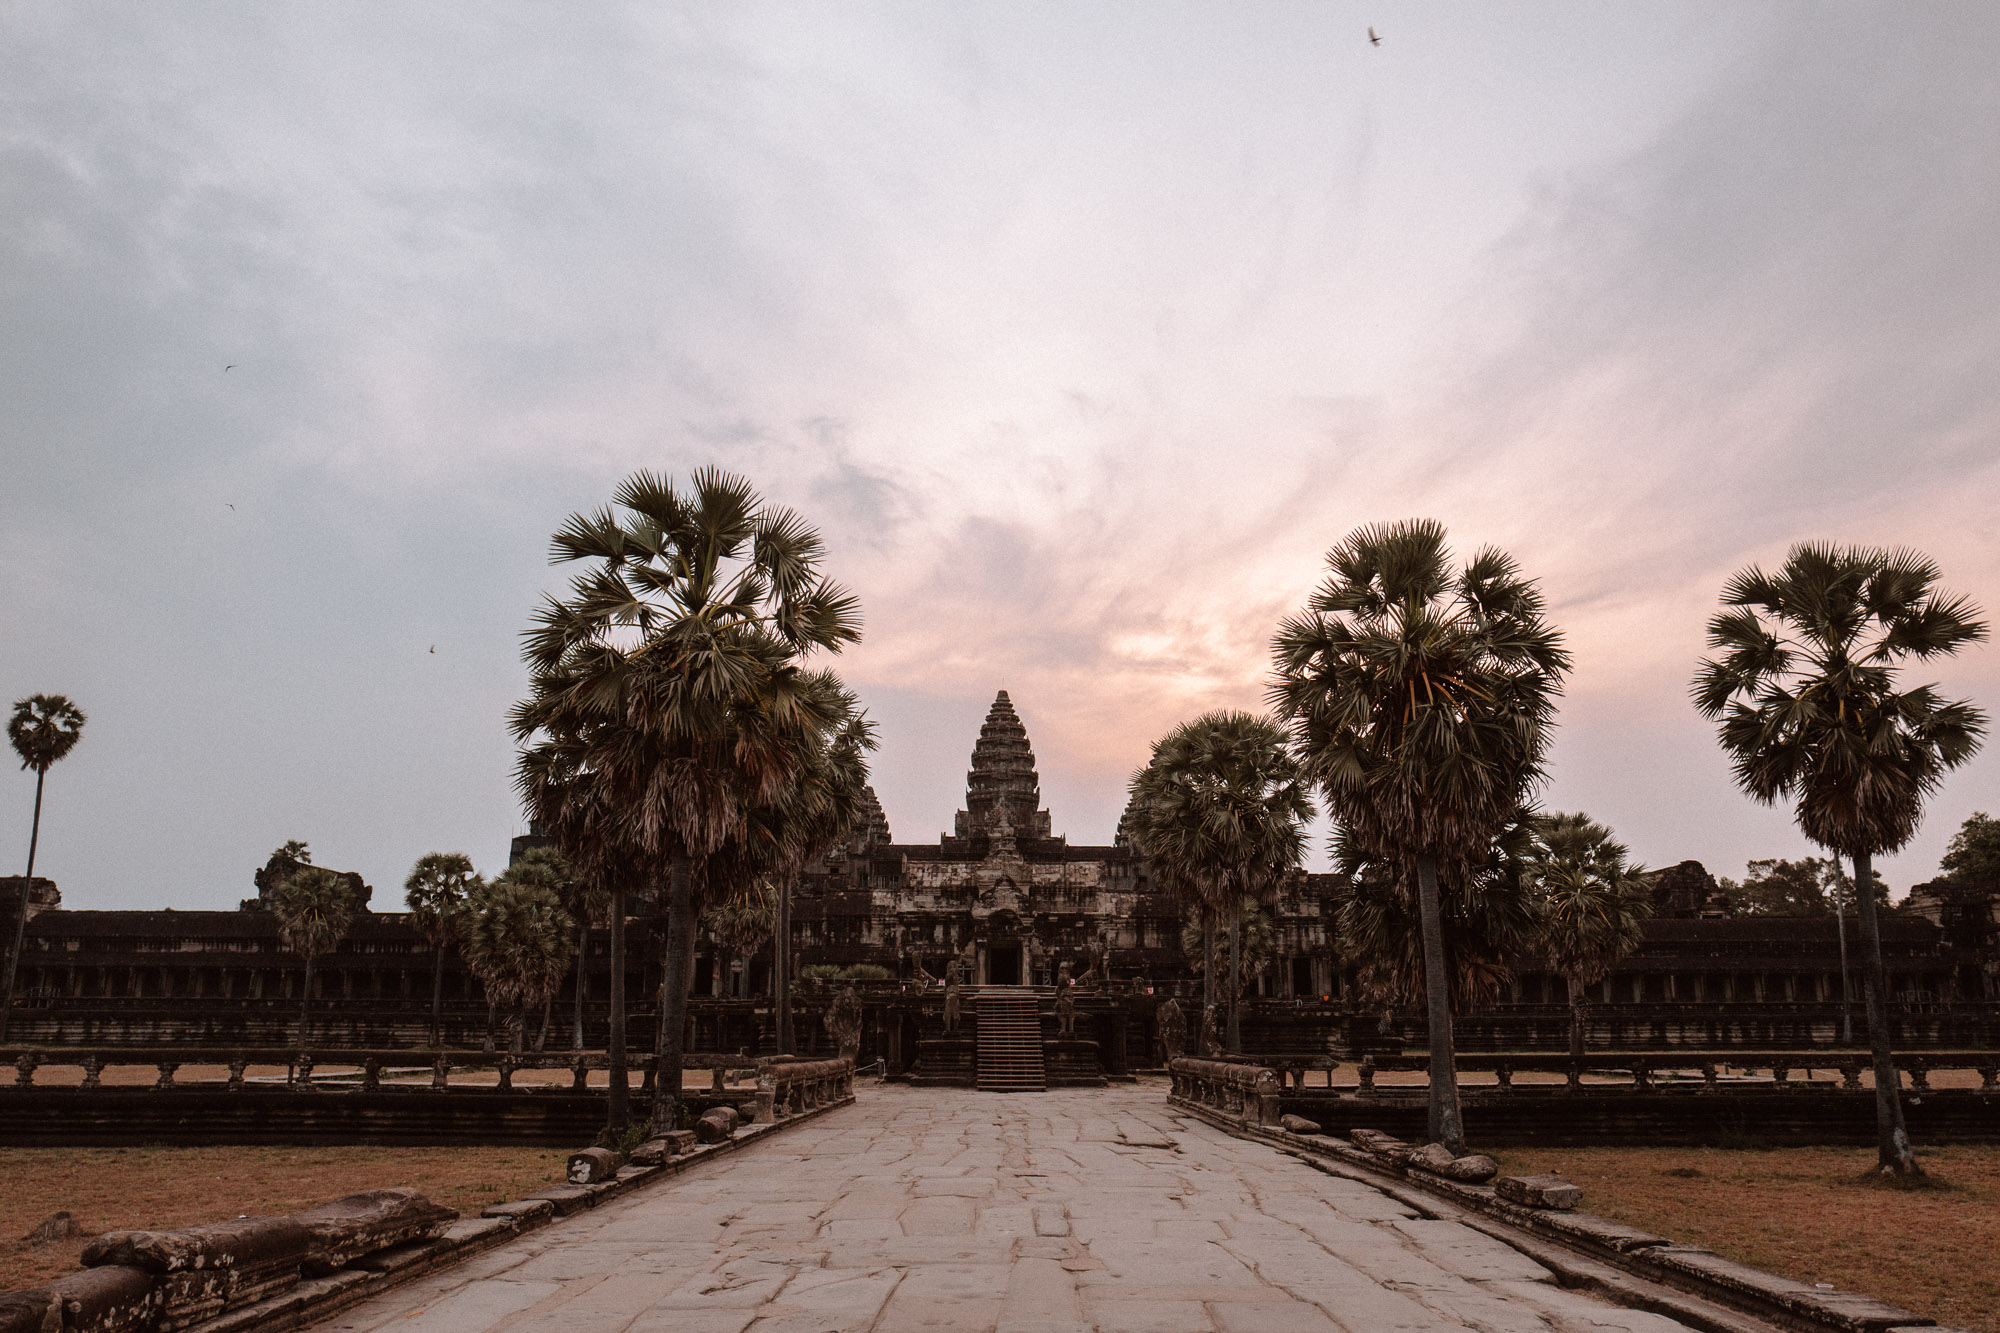 Angkor Wat at sunrise in Siem Reap, Cambodia